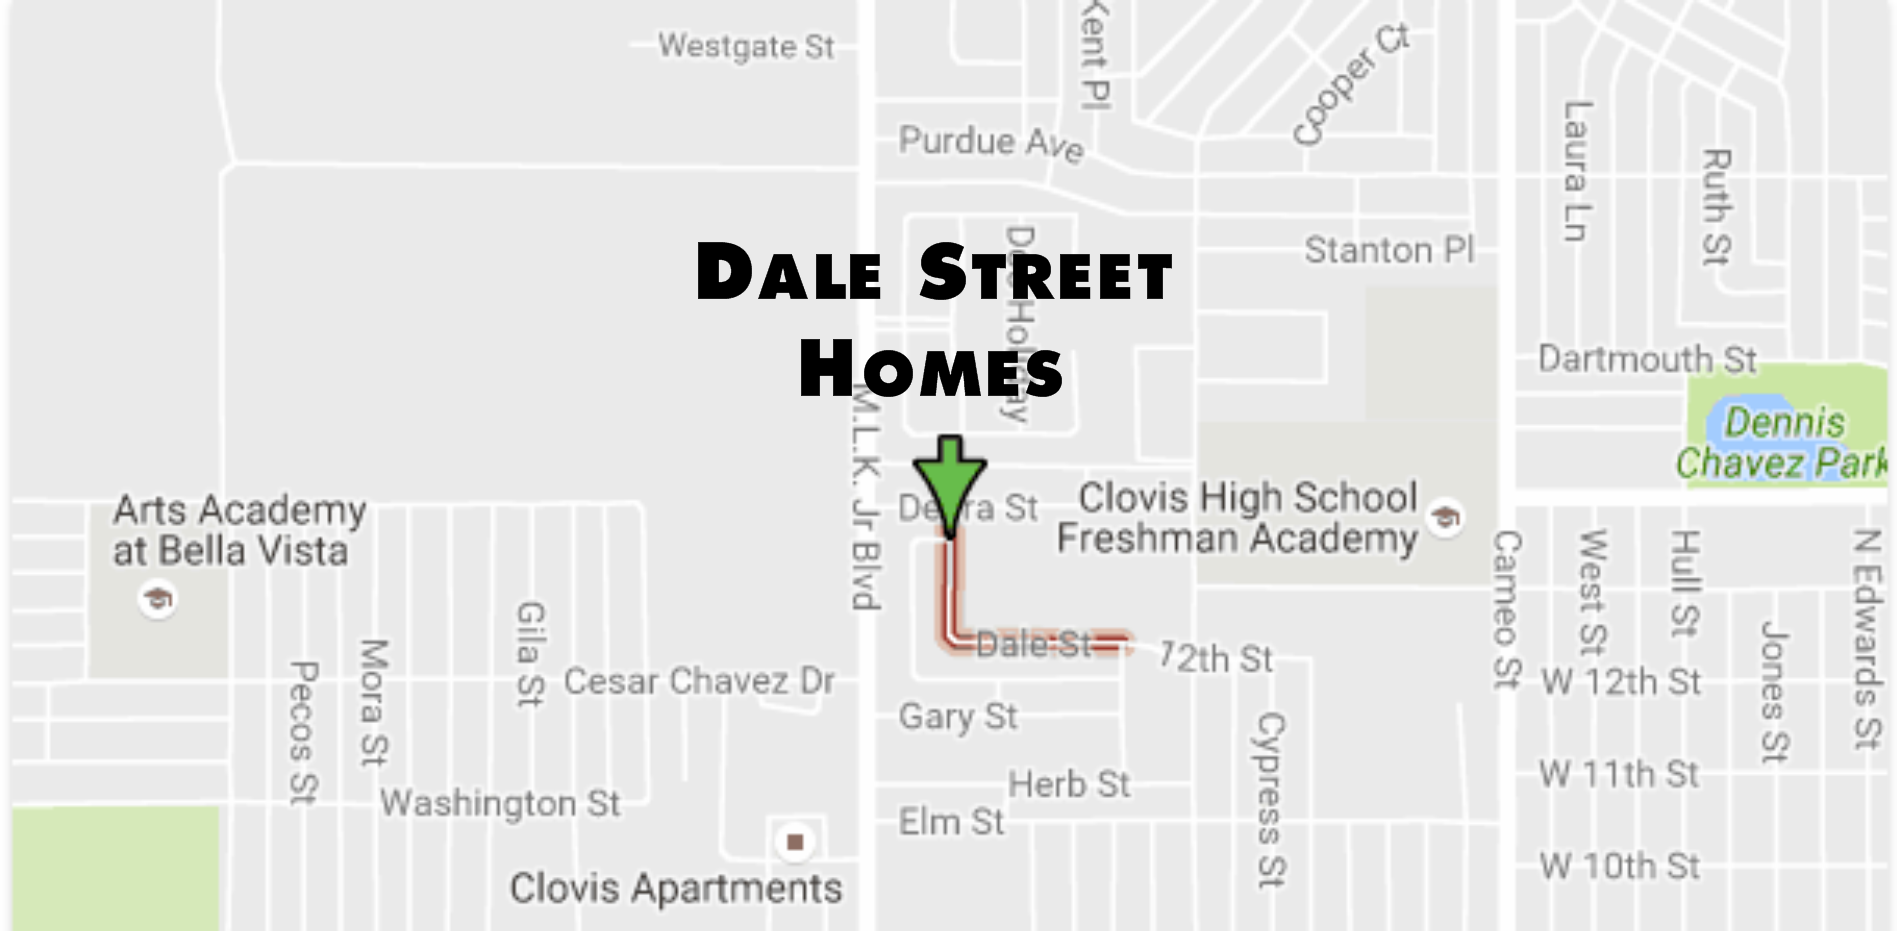 Dale St. Homes